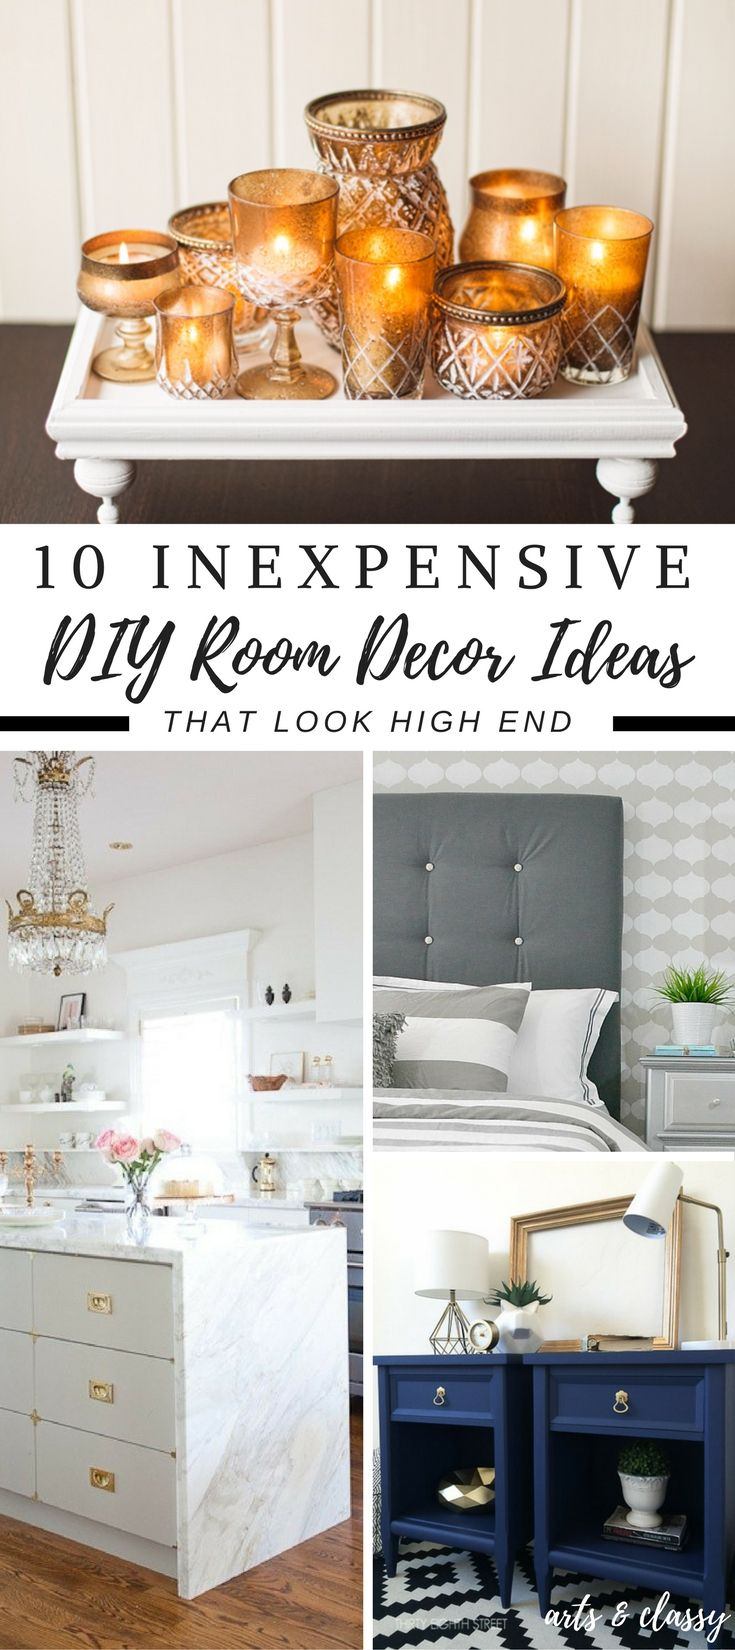 412 best Home Decorating Ideas images on Pinterest | For the home ...